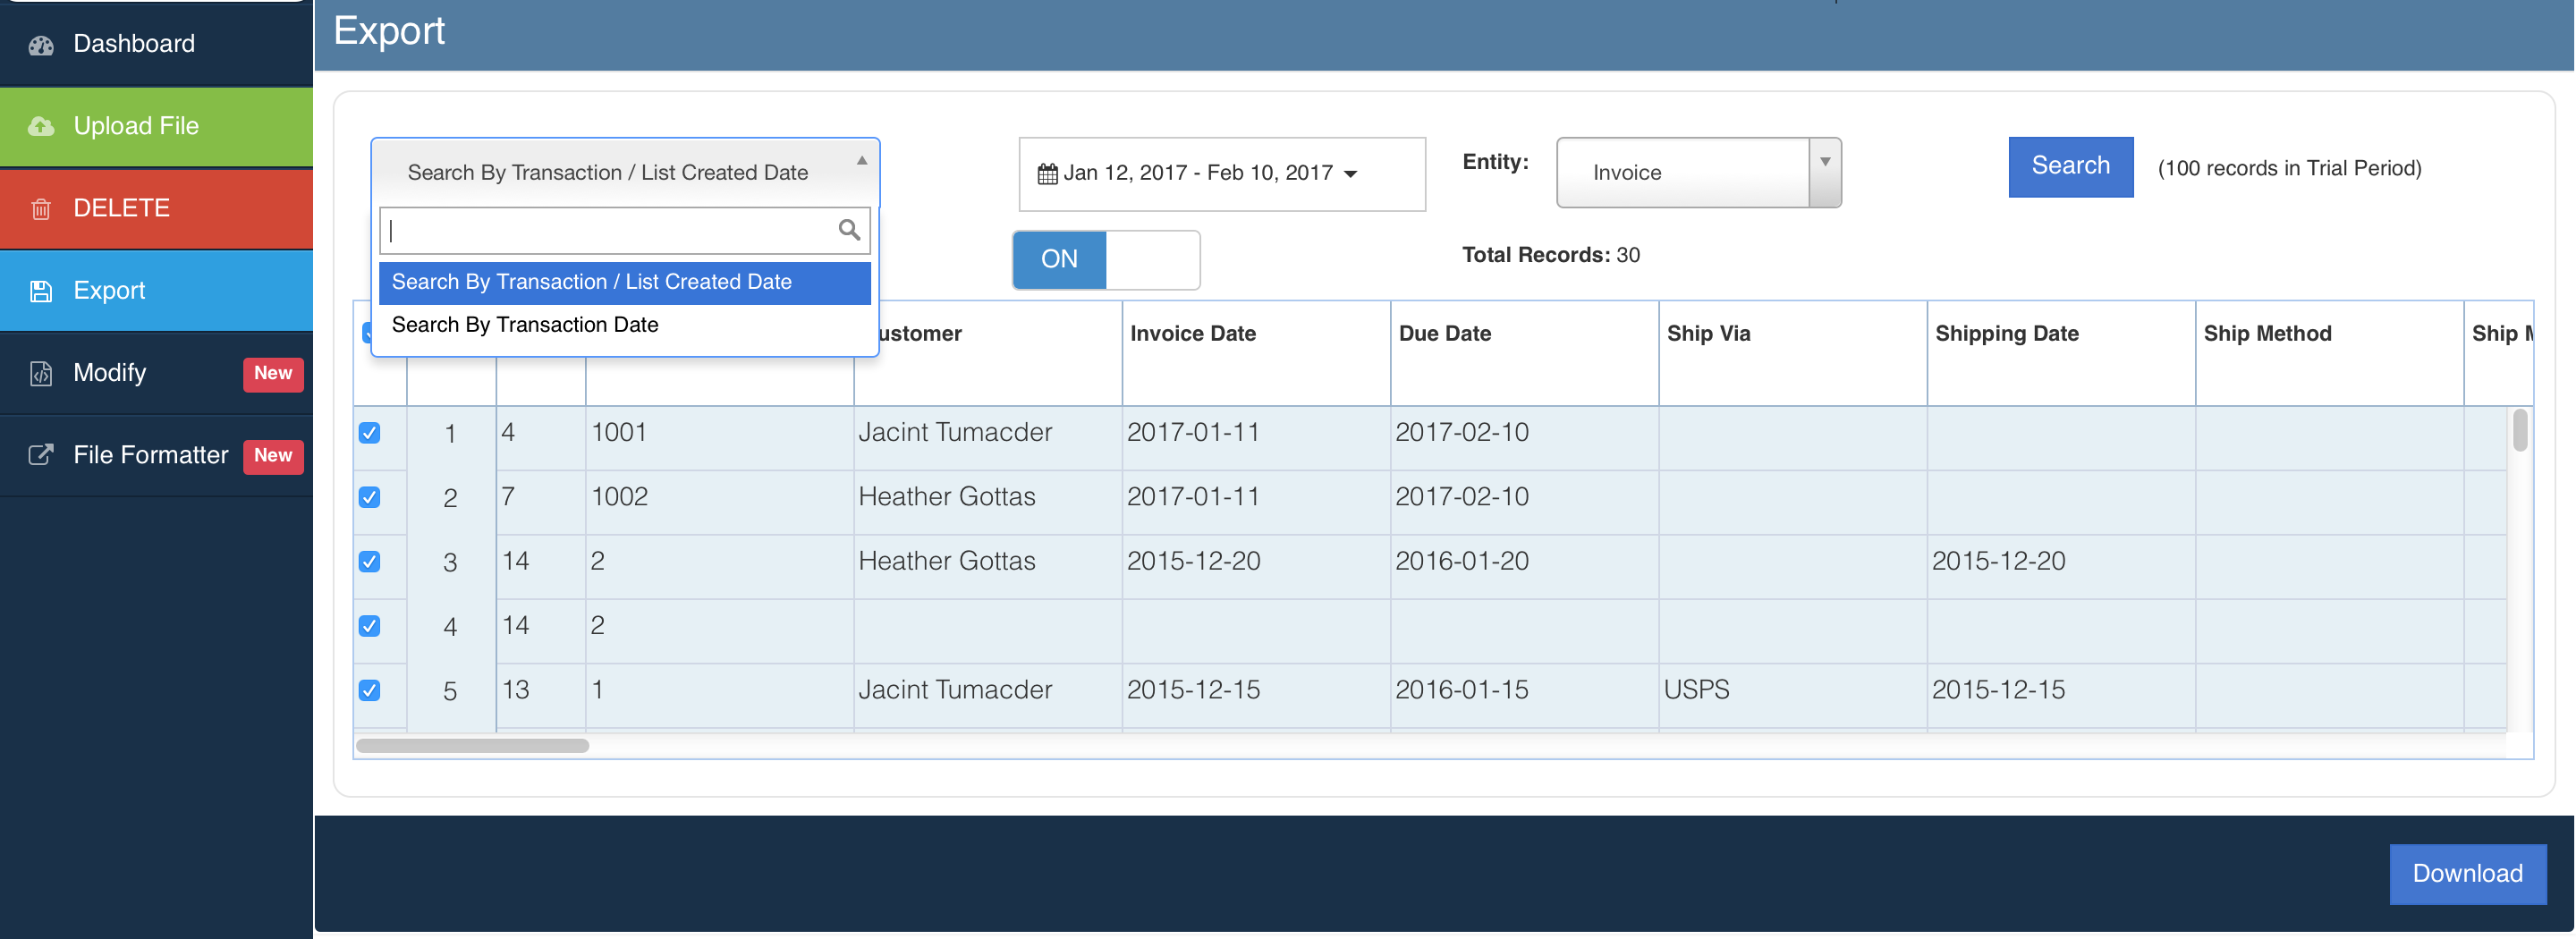 Export Transactions Using Excel Transactions SaasAnt - How to export invoices from quickbooks to excel for service business